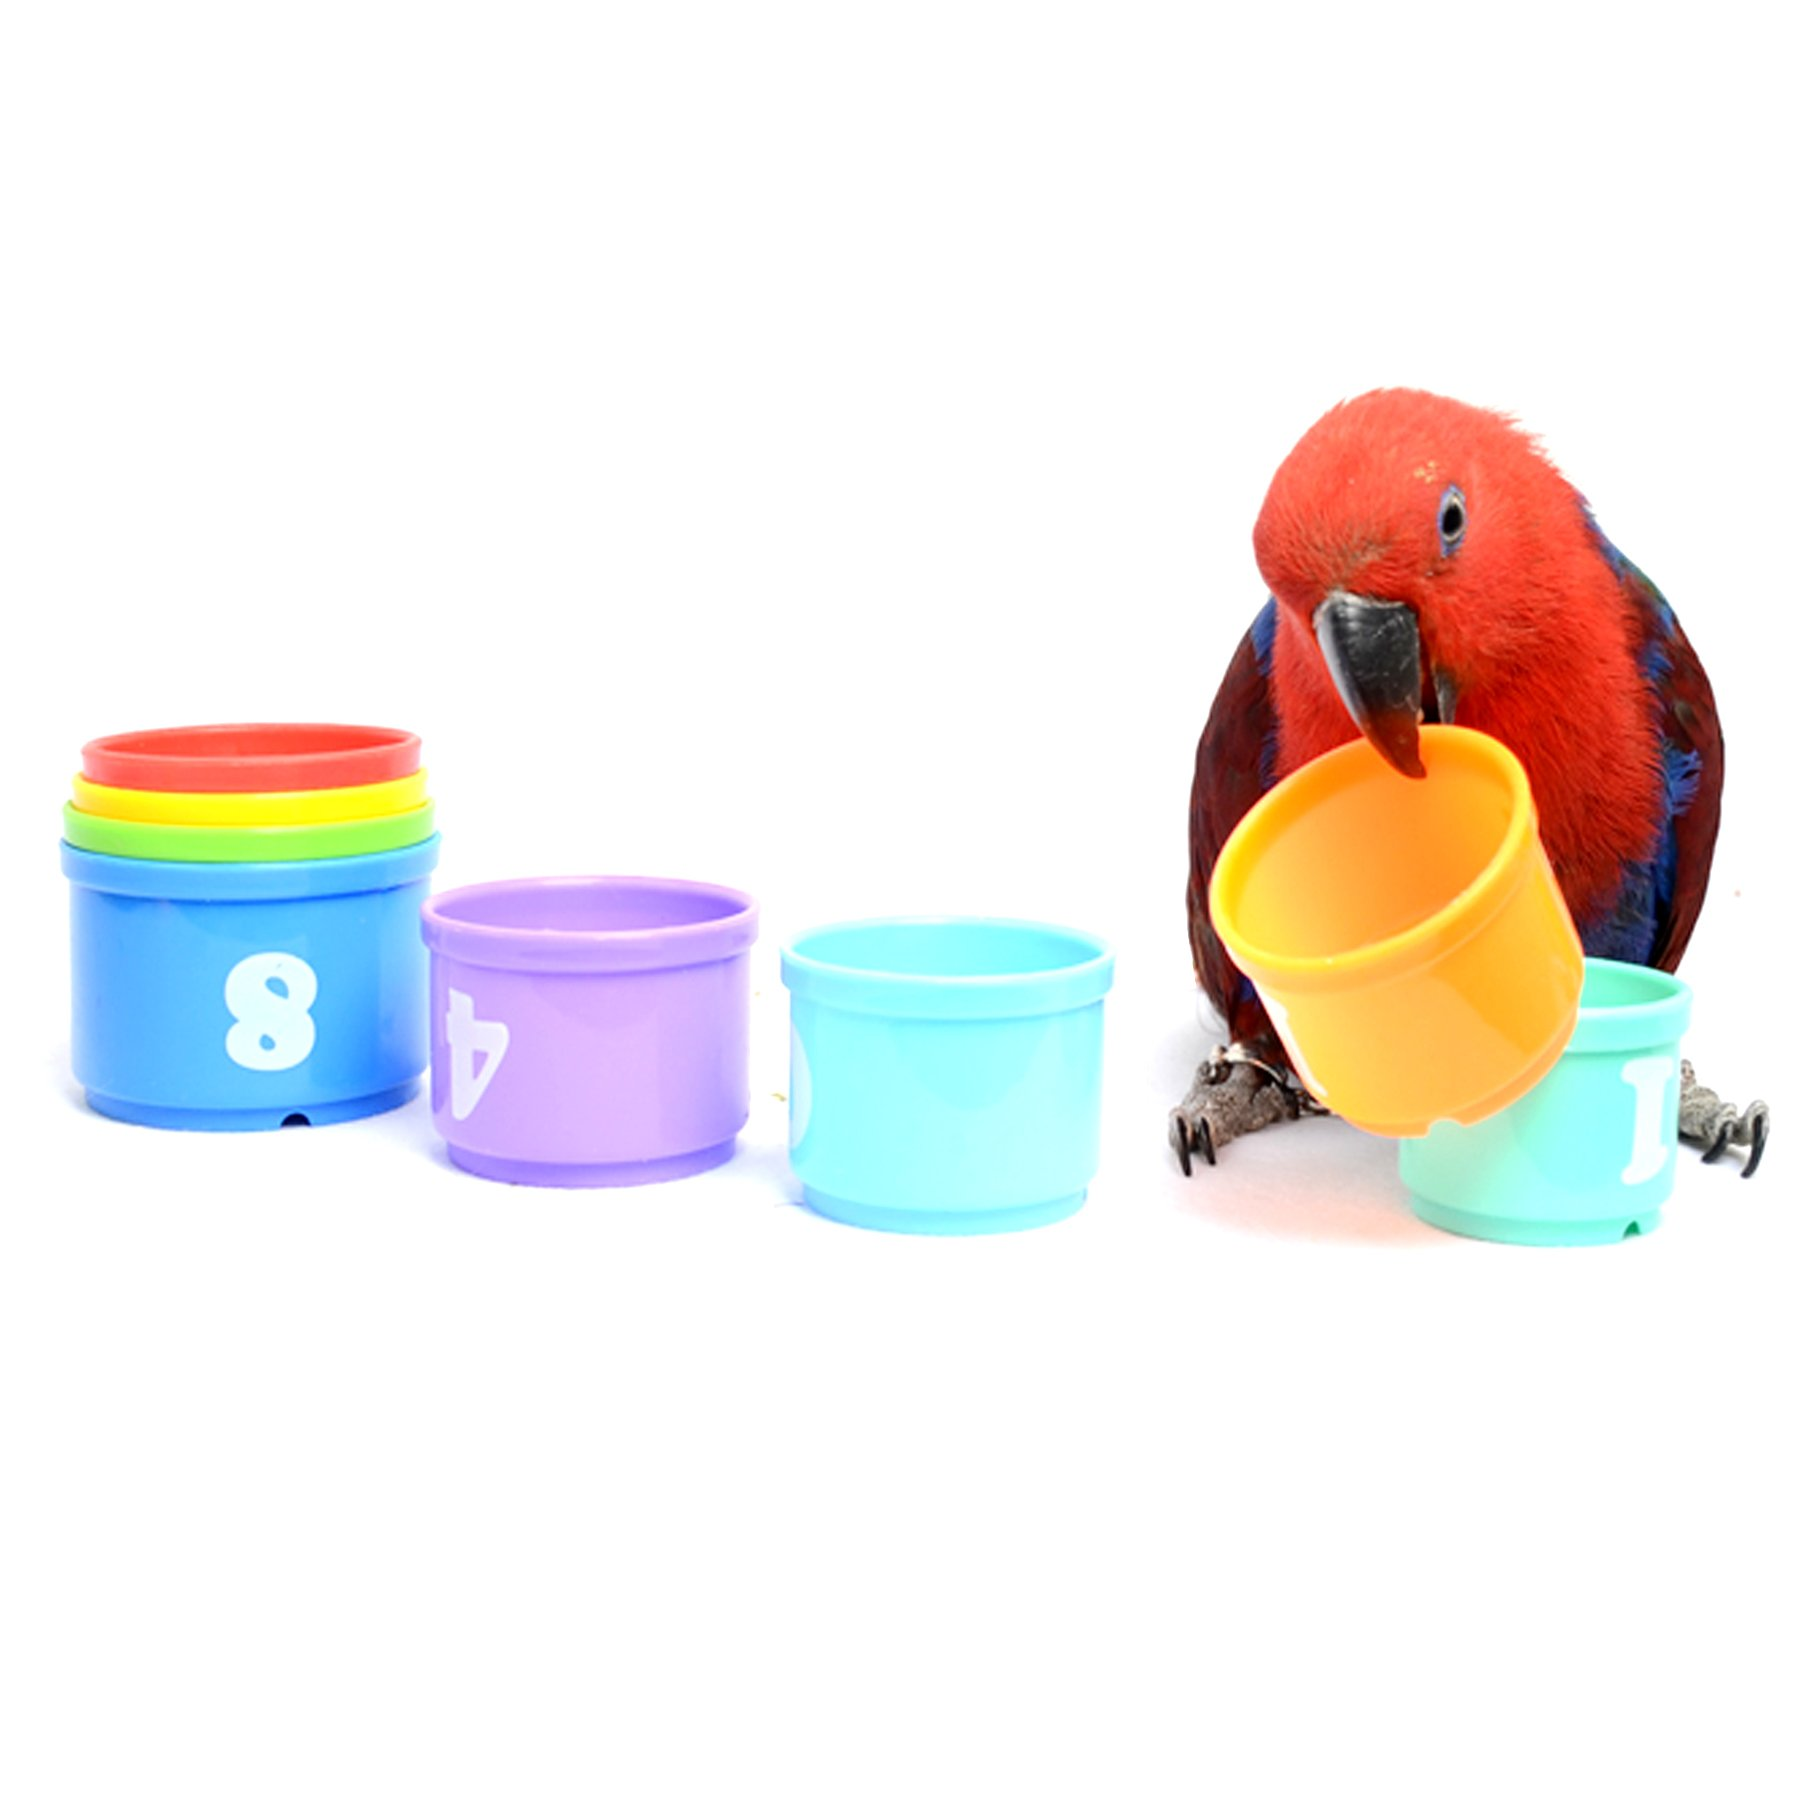 Alfie Pet by Petoga Couture - Daly Educational Stacking Cup Toy for Birds